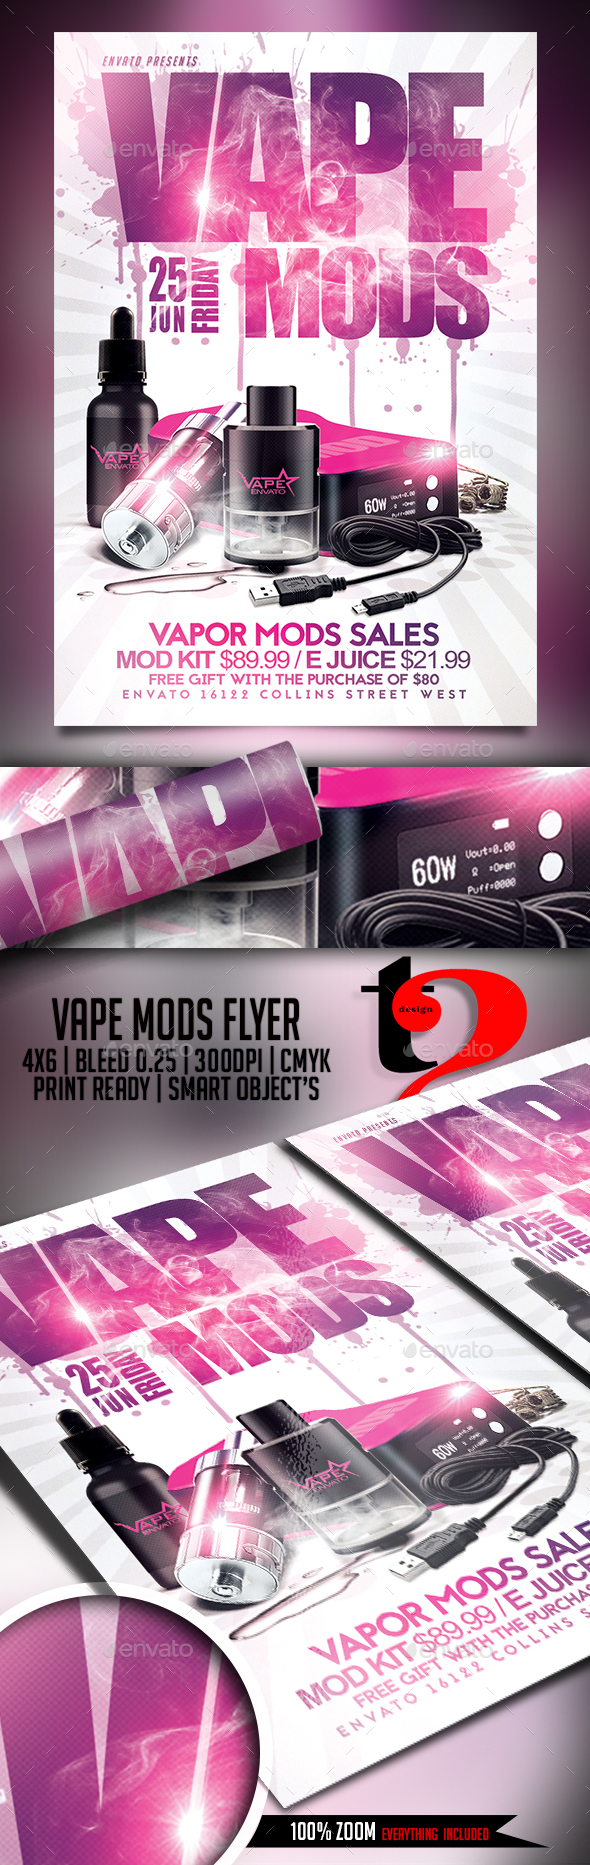 Vape Mods Flyer Template - Clubs & Parties Events